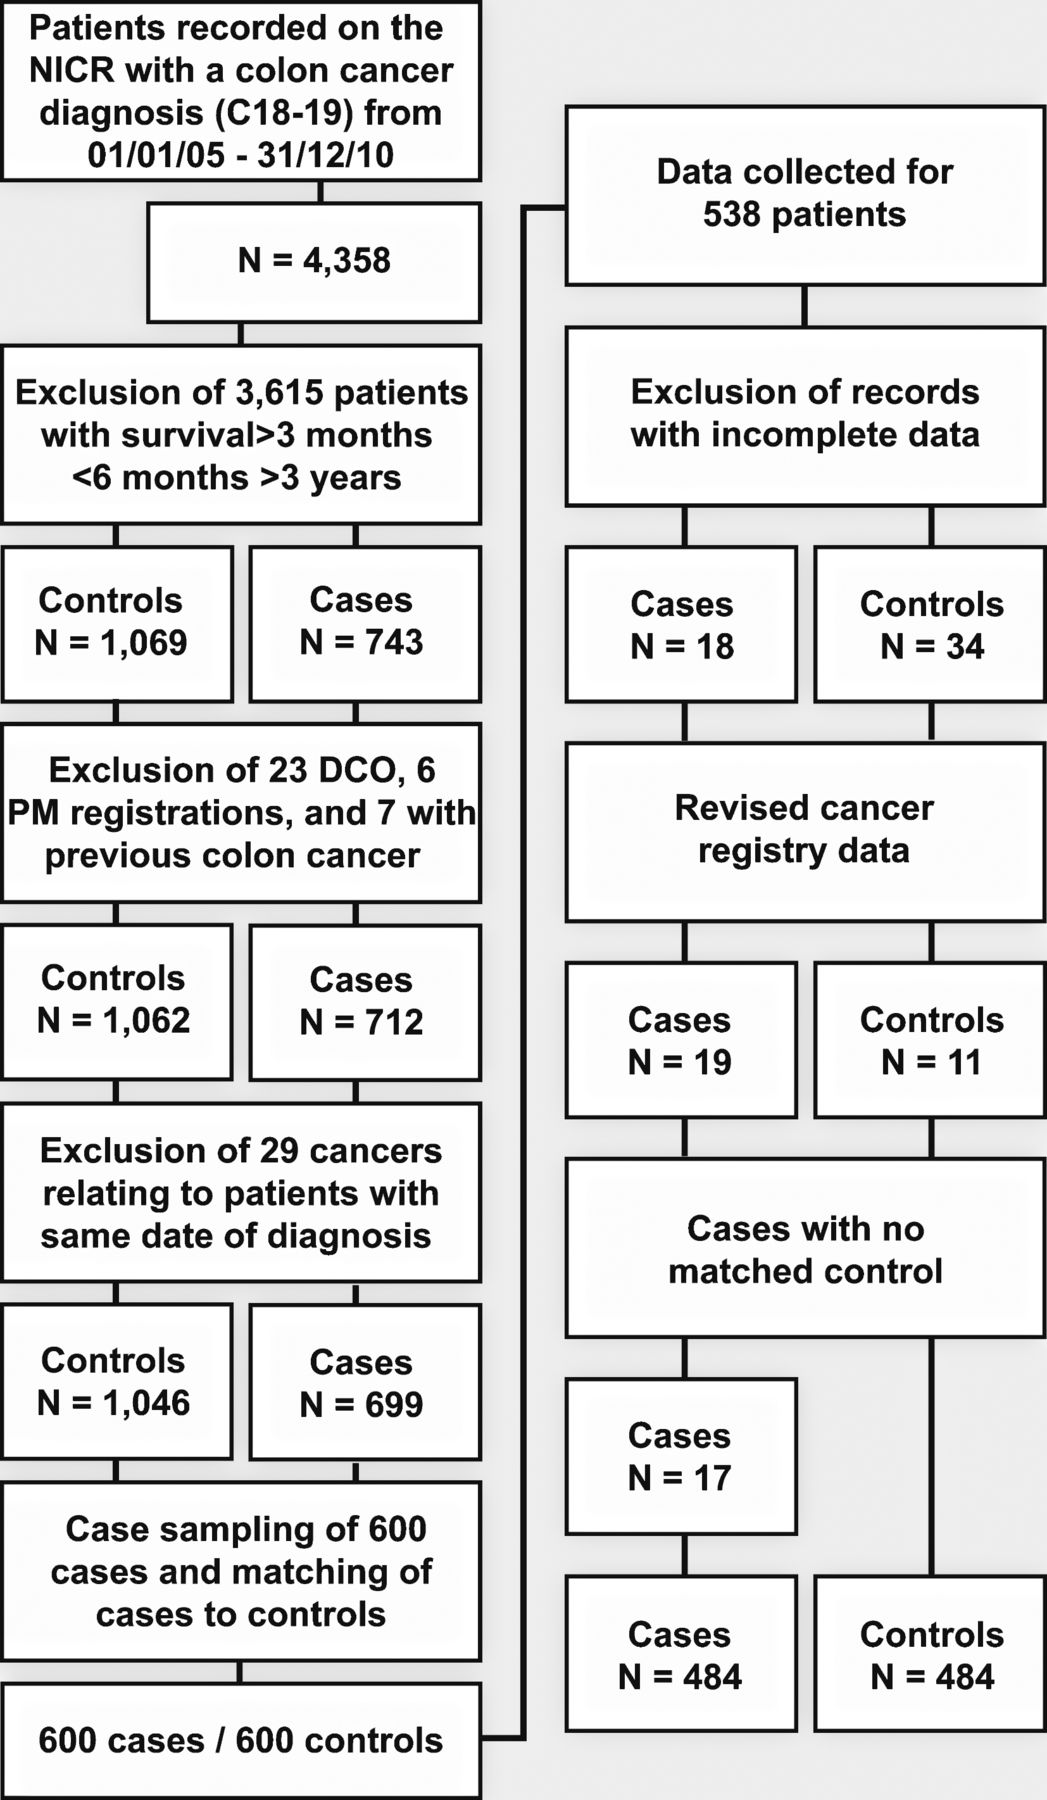 Predictors of an early death in patients diagnosed with colon cancer